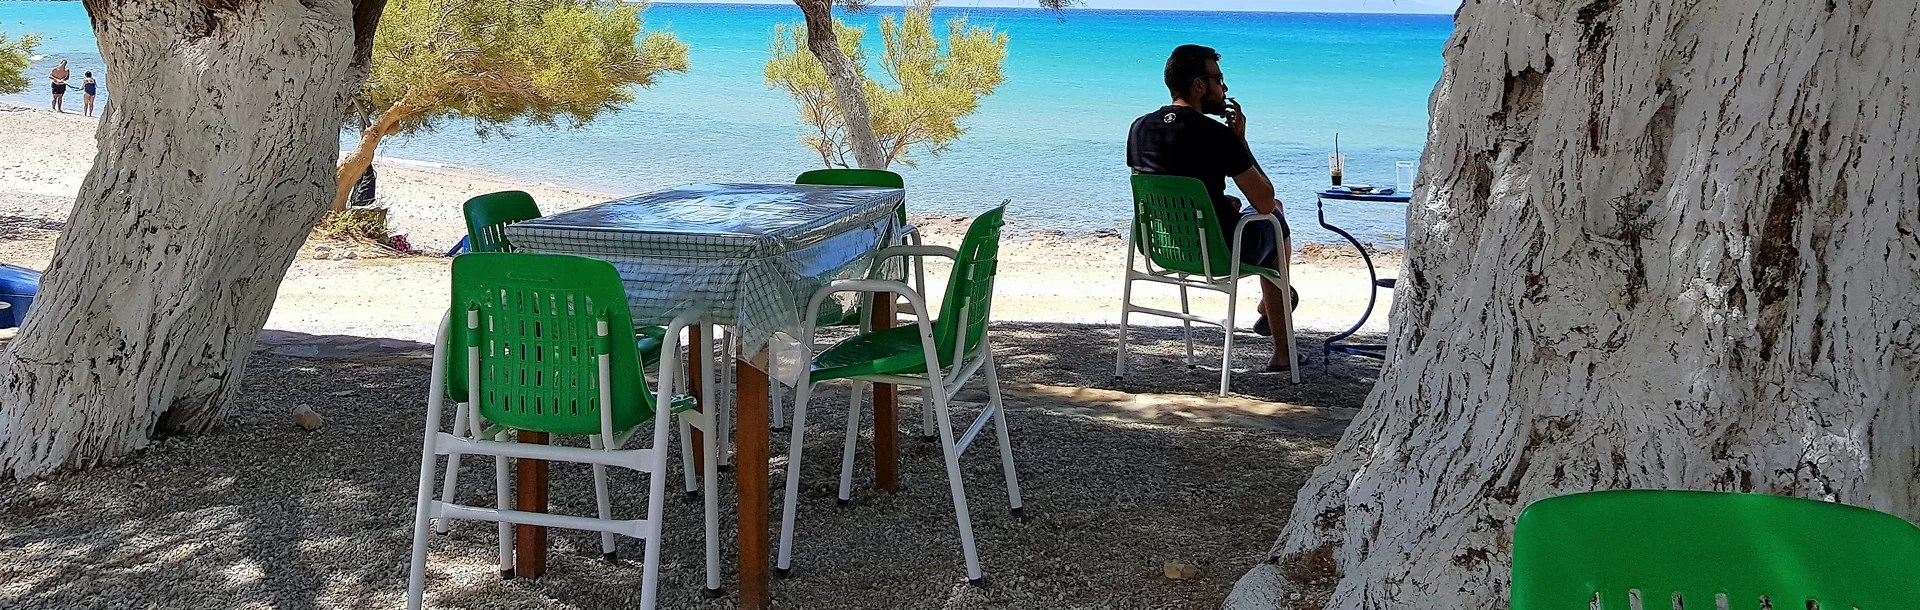 Naxos man sitting by beach